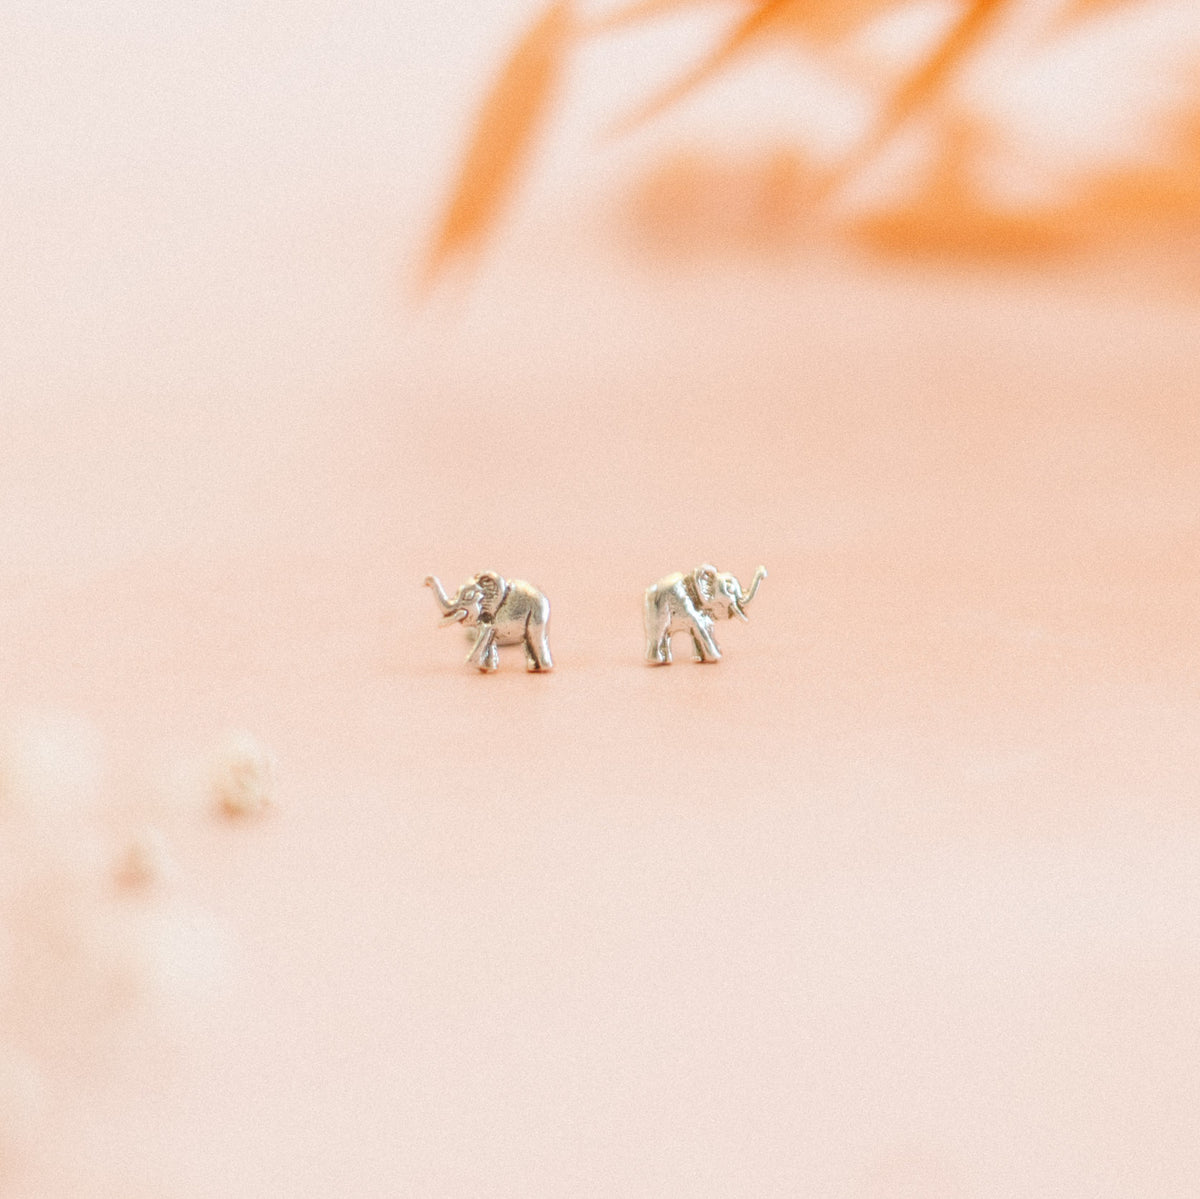 Lifestyle close-up picture of the elephant studs.